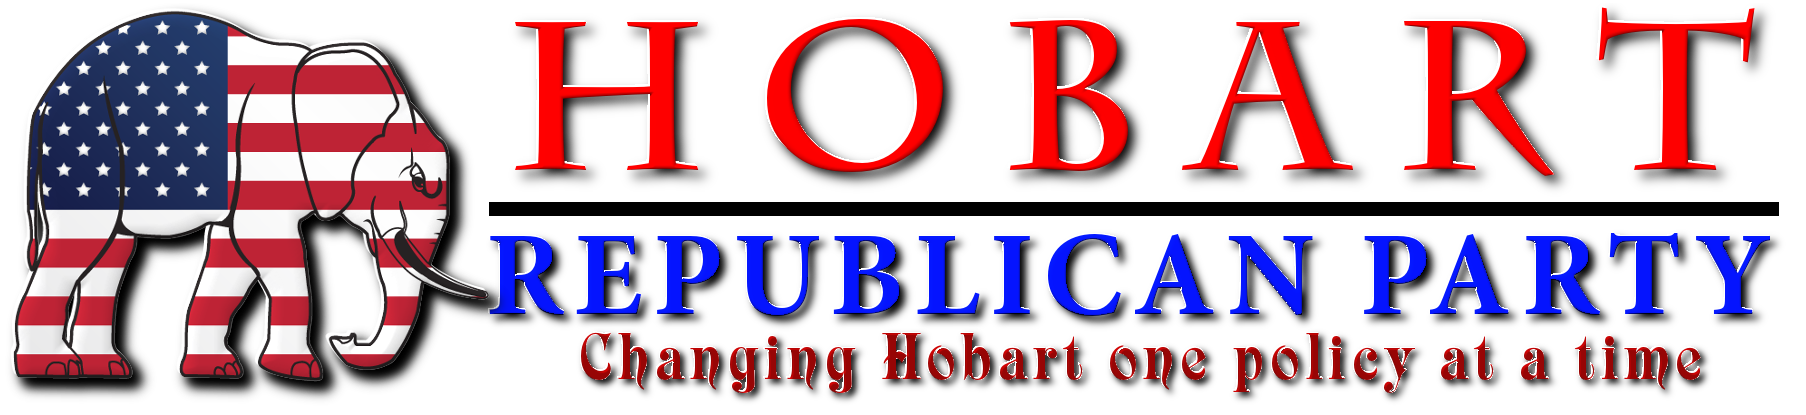 Hobart Republican Party Logo